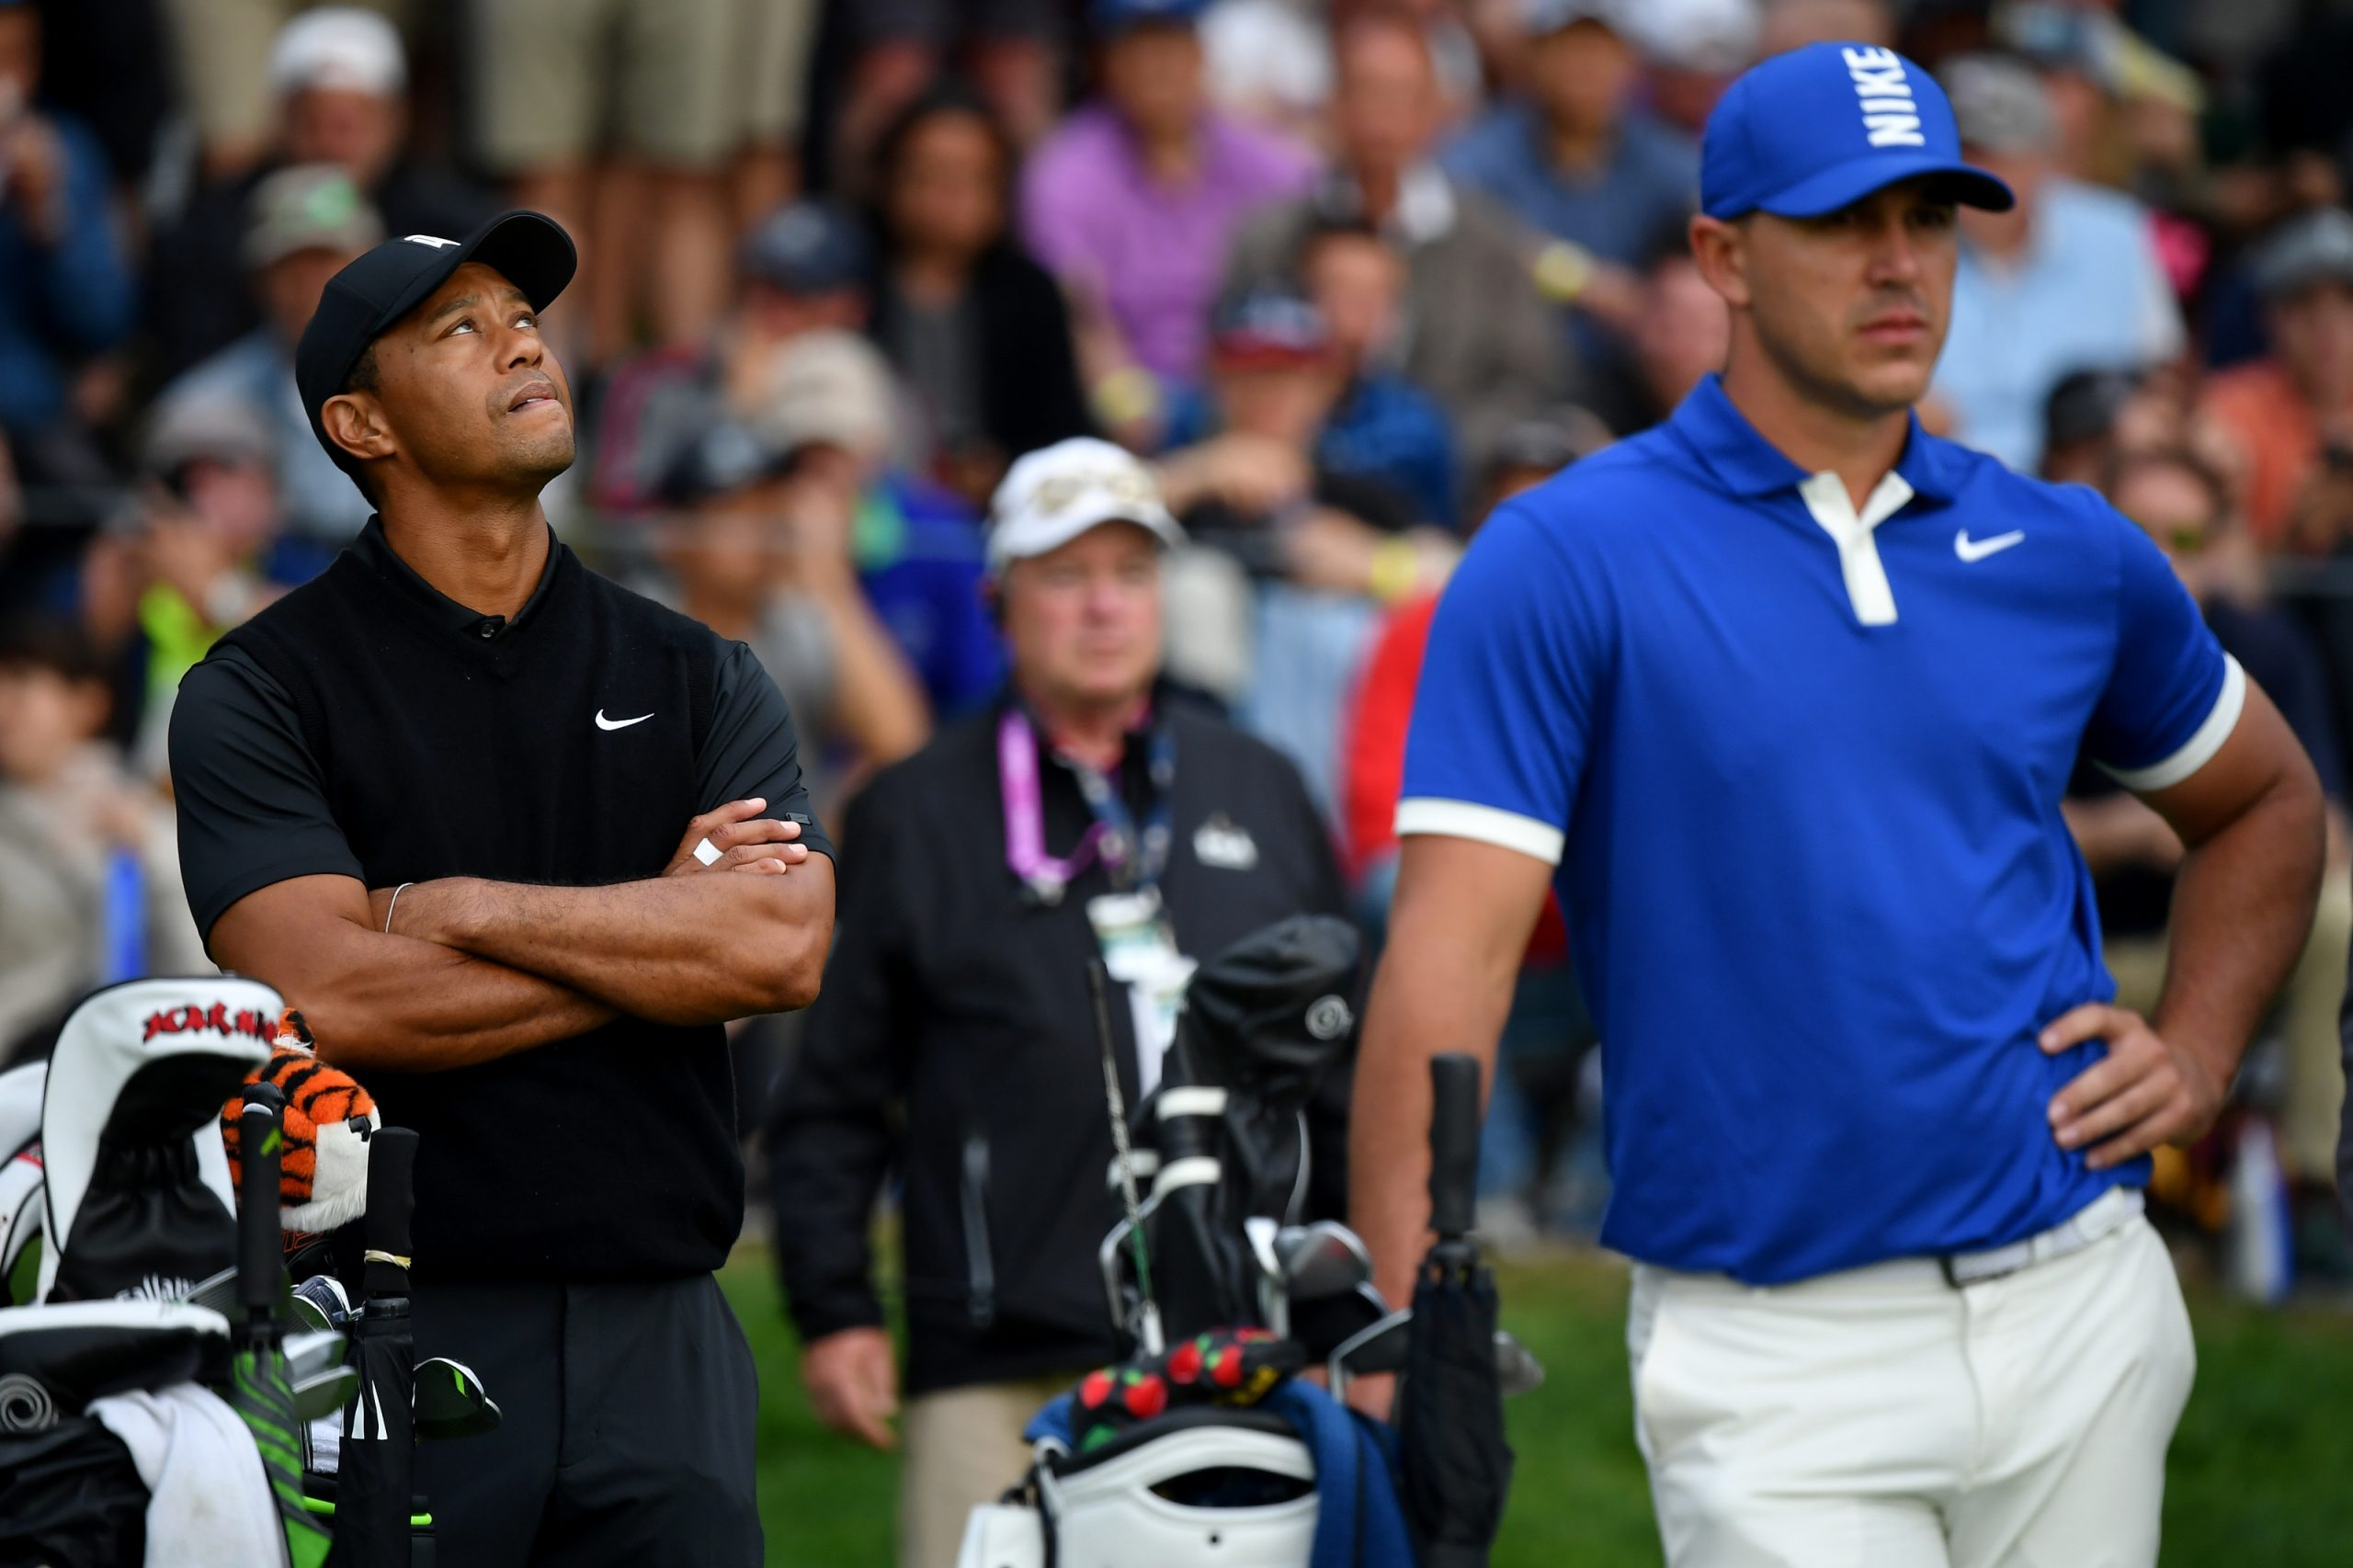 Stricker's Problem Child:  Brooks Koepka Is Totally Full Of Hot Air!